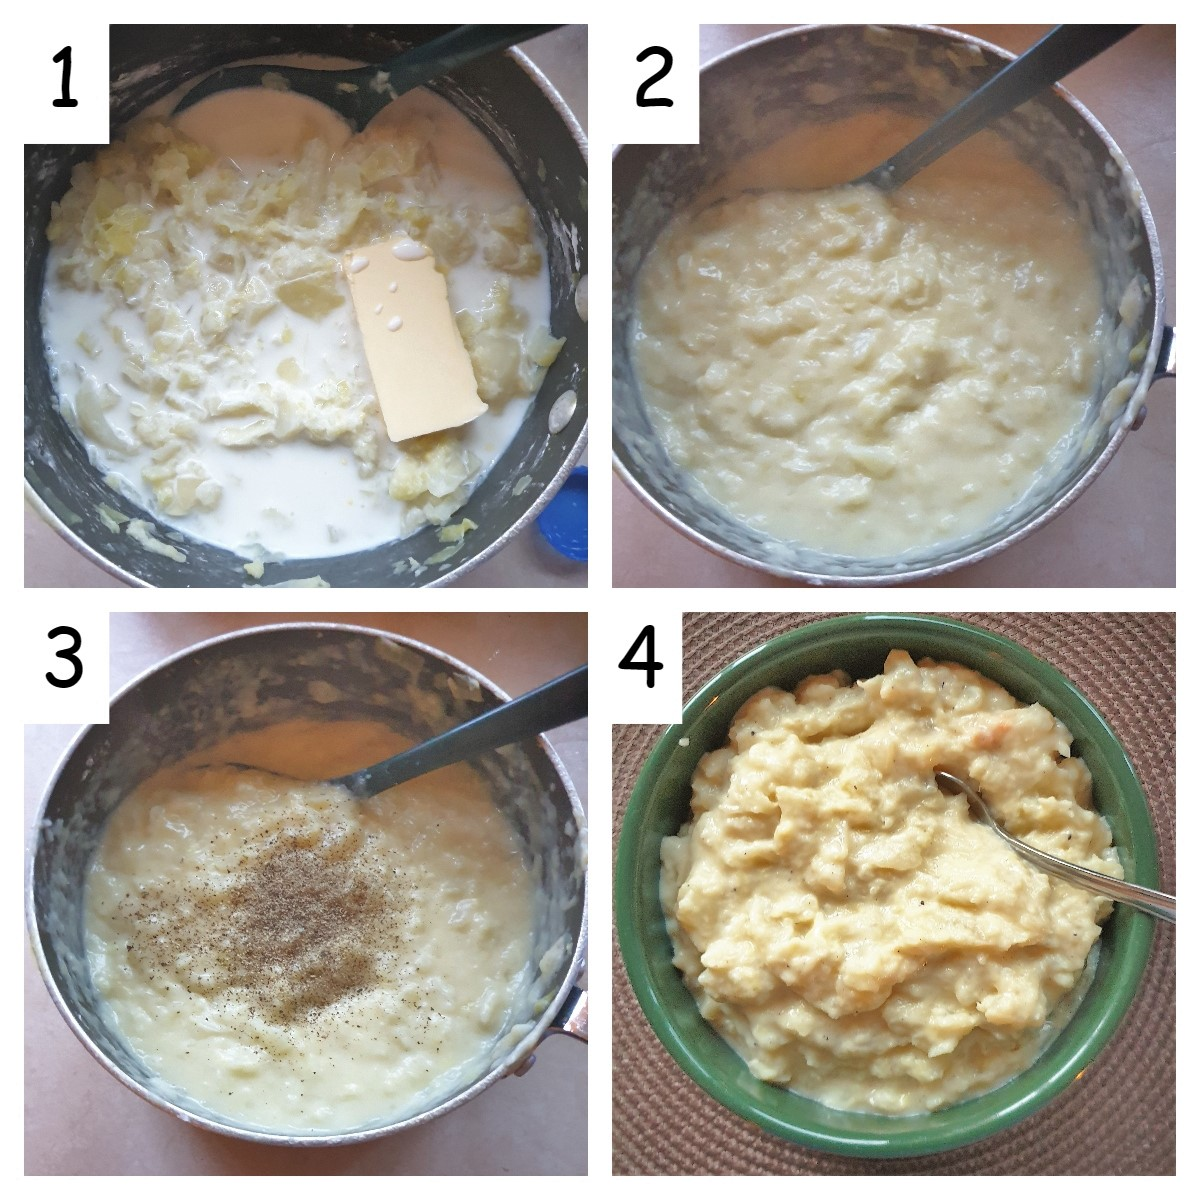 A collage of 4 images showing the steps for making the sauce for the cabbage.